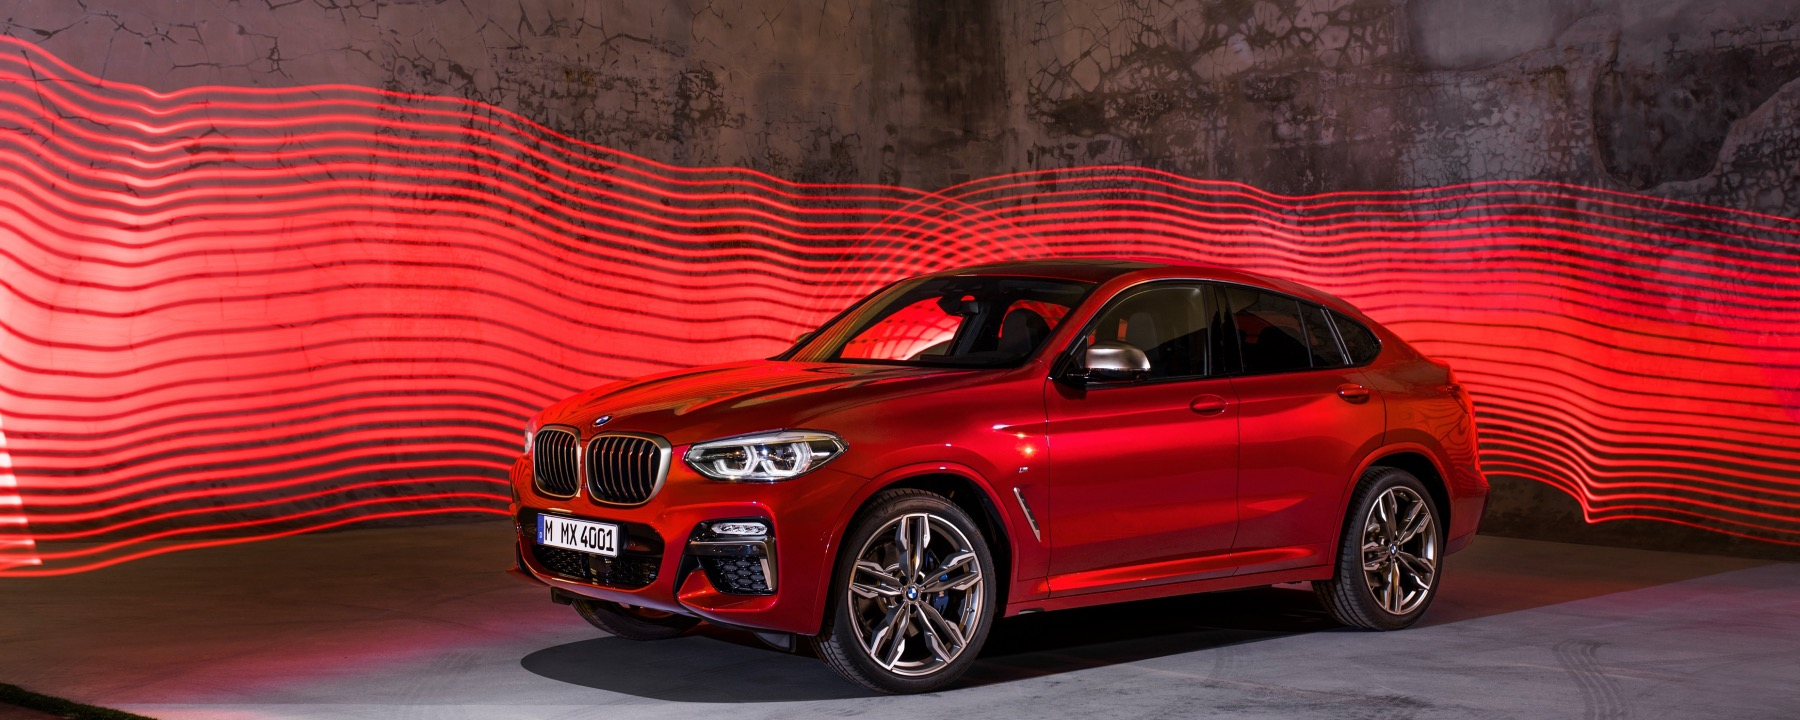 The New X4 Bmw Of Palm Springs Blog